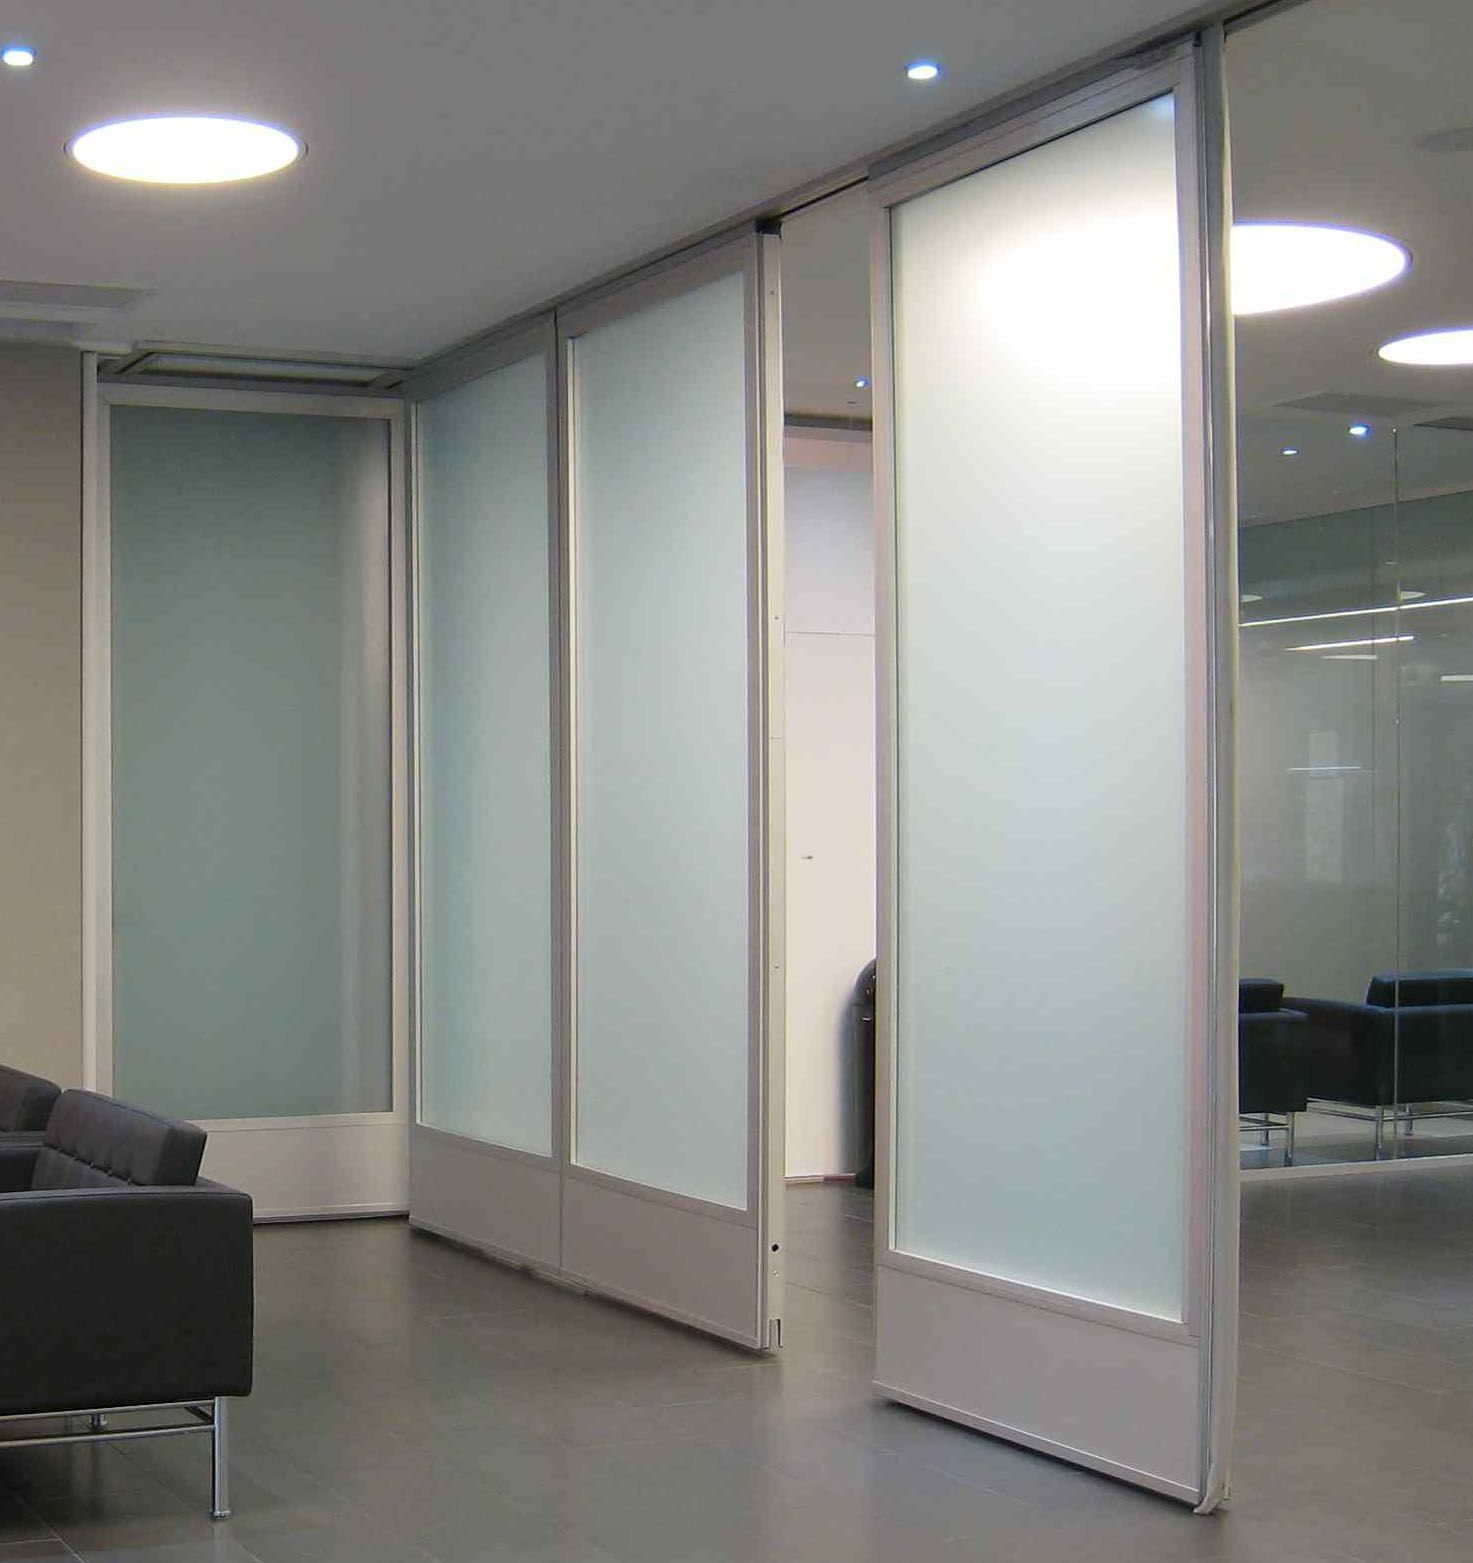 Glass Wall Divider Opaque Glass Wall Dividers  Google Search  Home Improvement